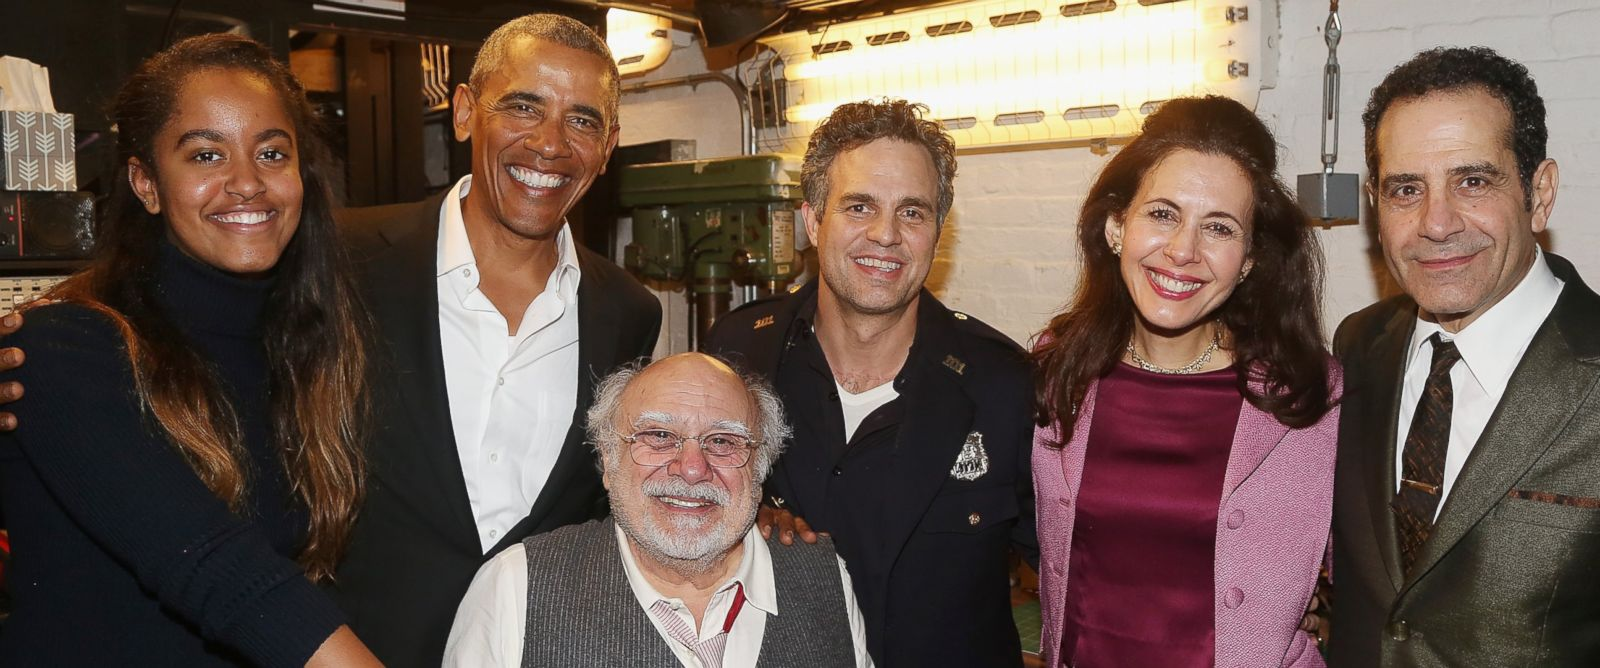 "PHOTO: Malia Obama, Barack Obama, Danny DeVito, Mark Ruffalo, Jessica Hecht and Tony Shalhoub backstage at The Roundabout Theatre Companys production of ""Arthur Millers The Price"" on Broadway at The American Airlines Theatre on February 24, 2017, NYC."